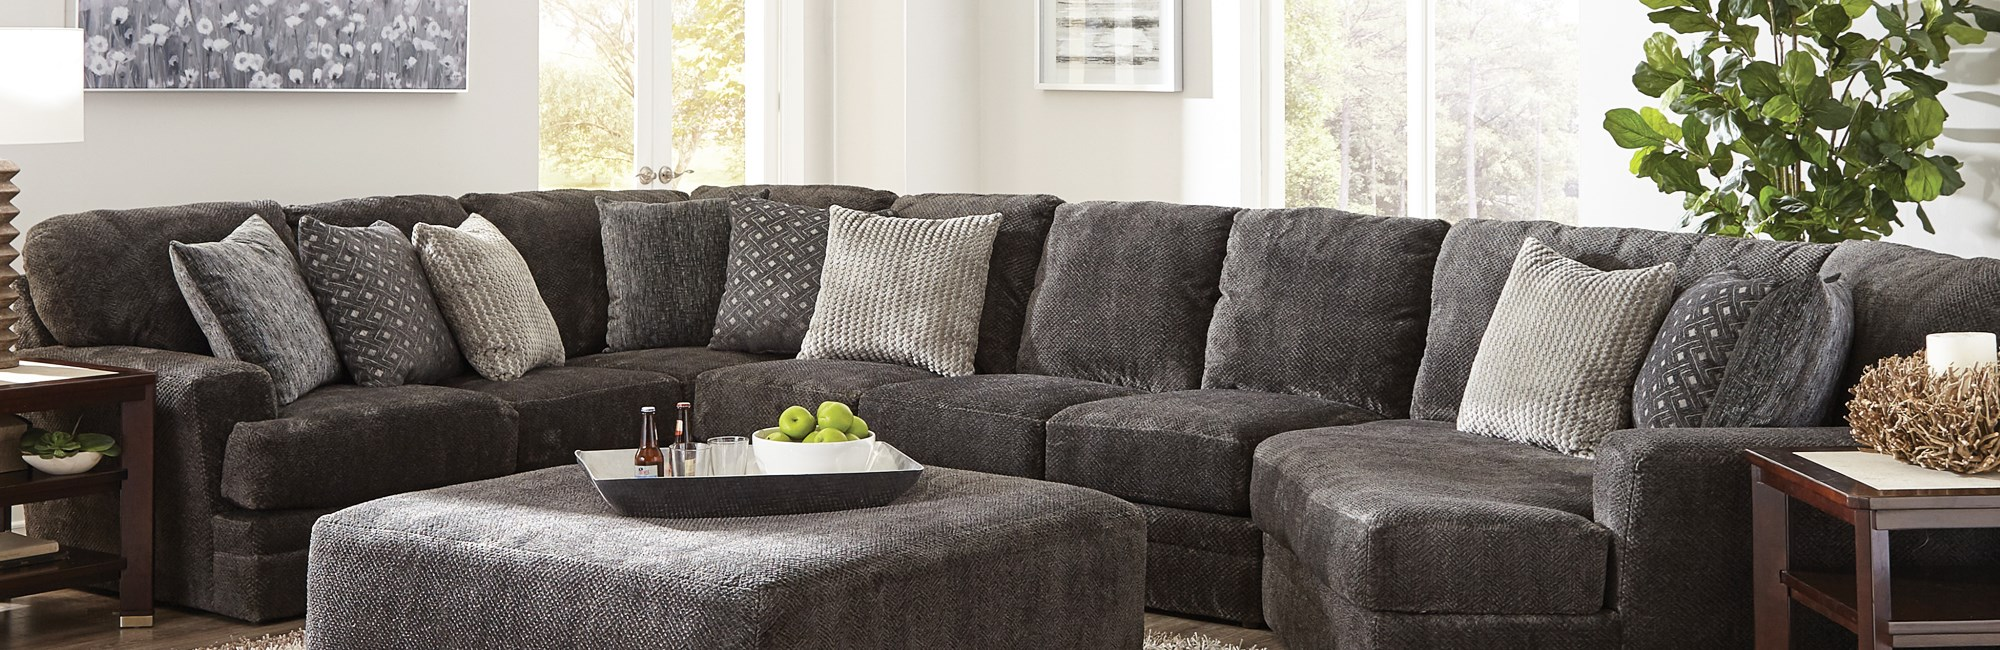 shop living room furniture at ruby gordon home | rochester